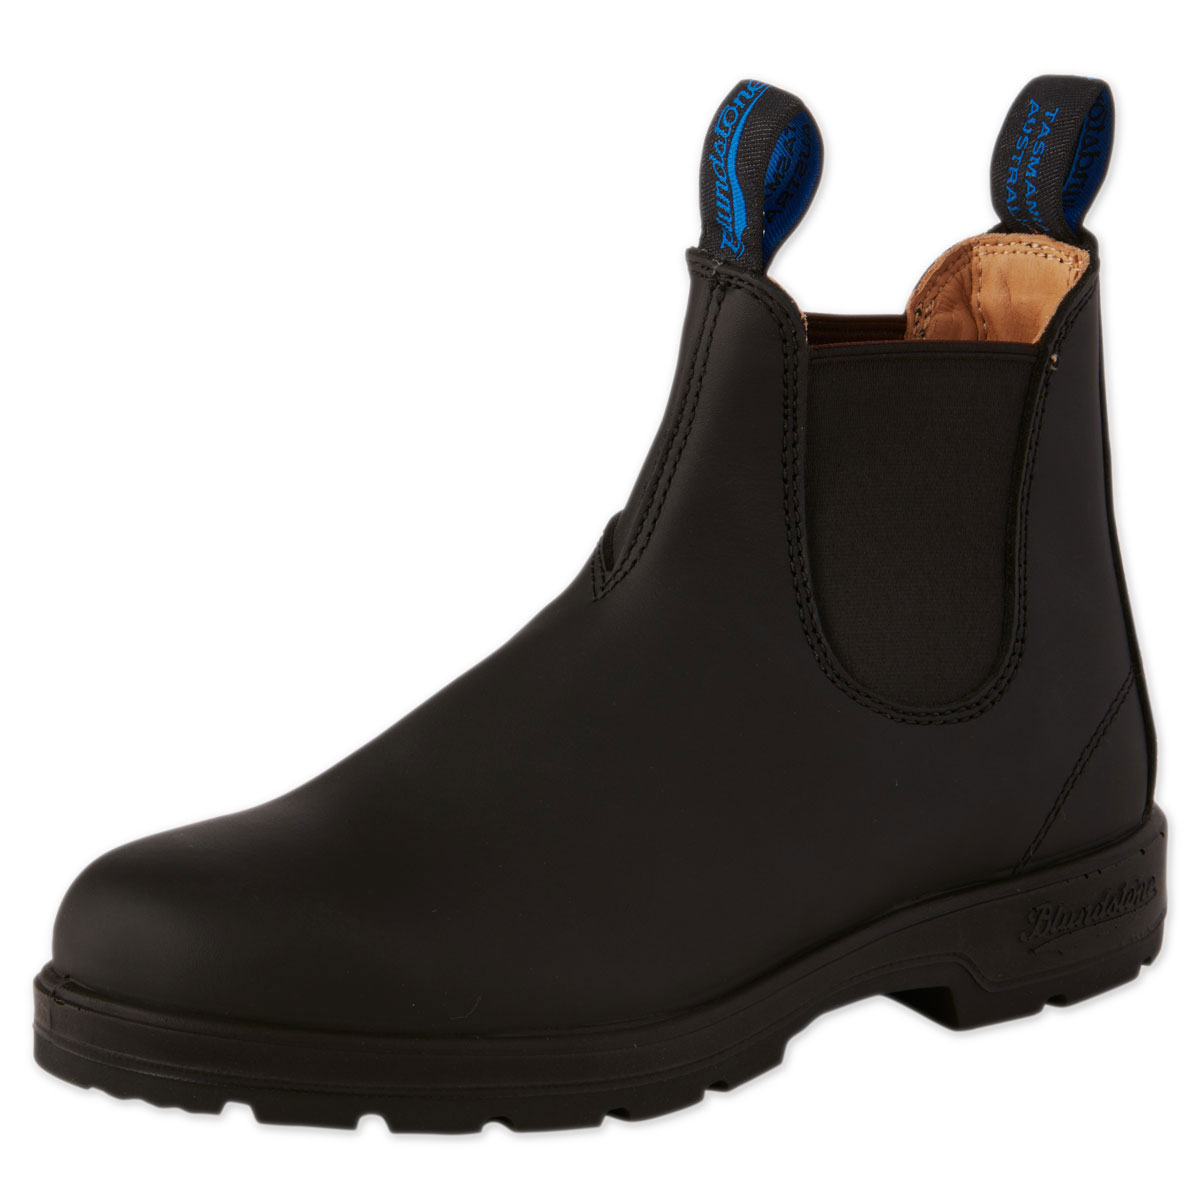 Blundstone Thermal Chelsea Boot